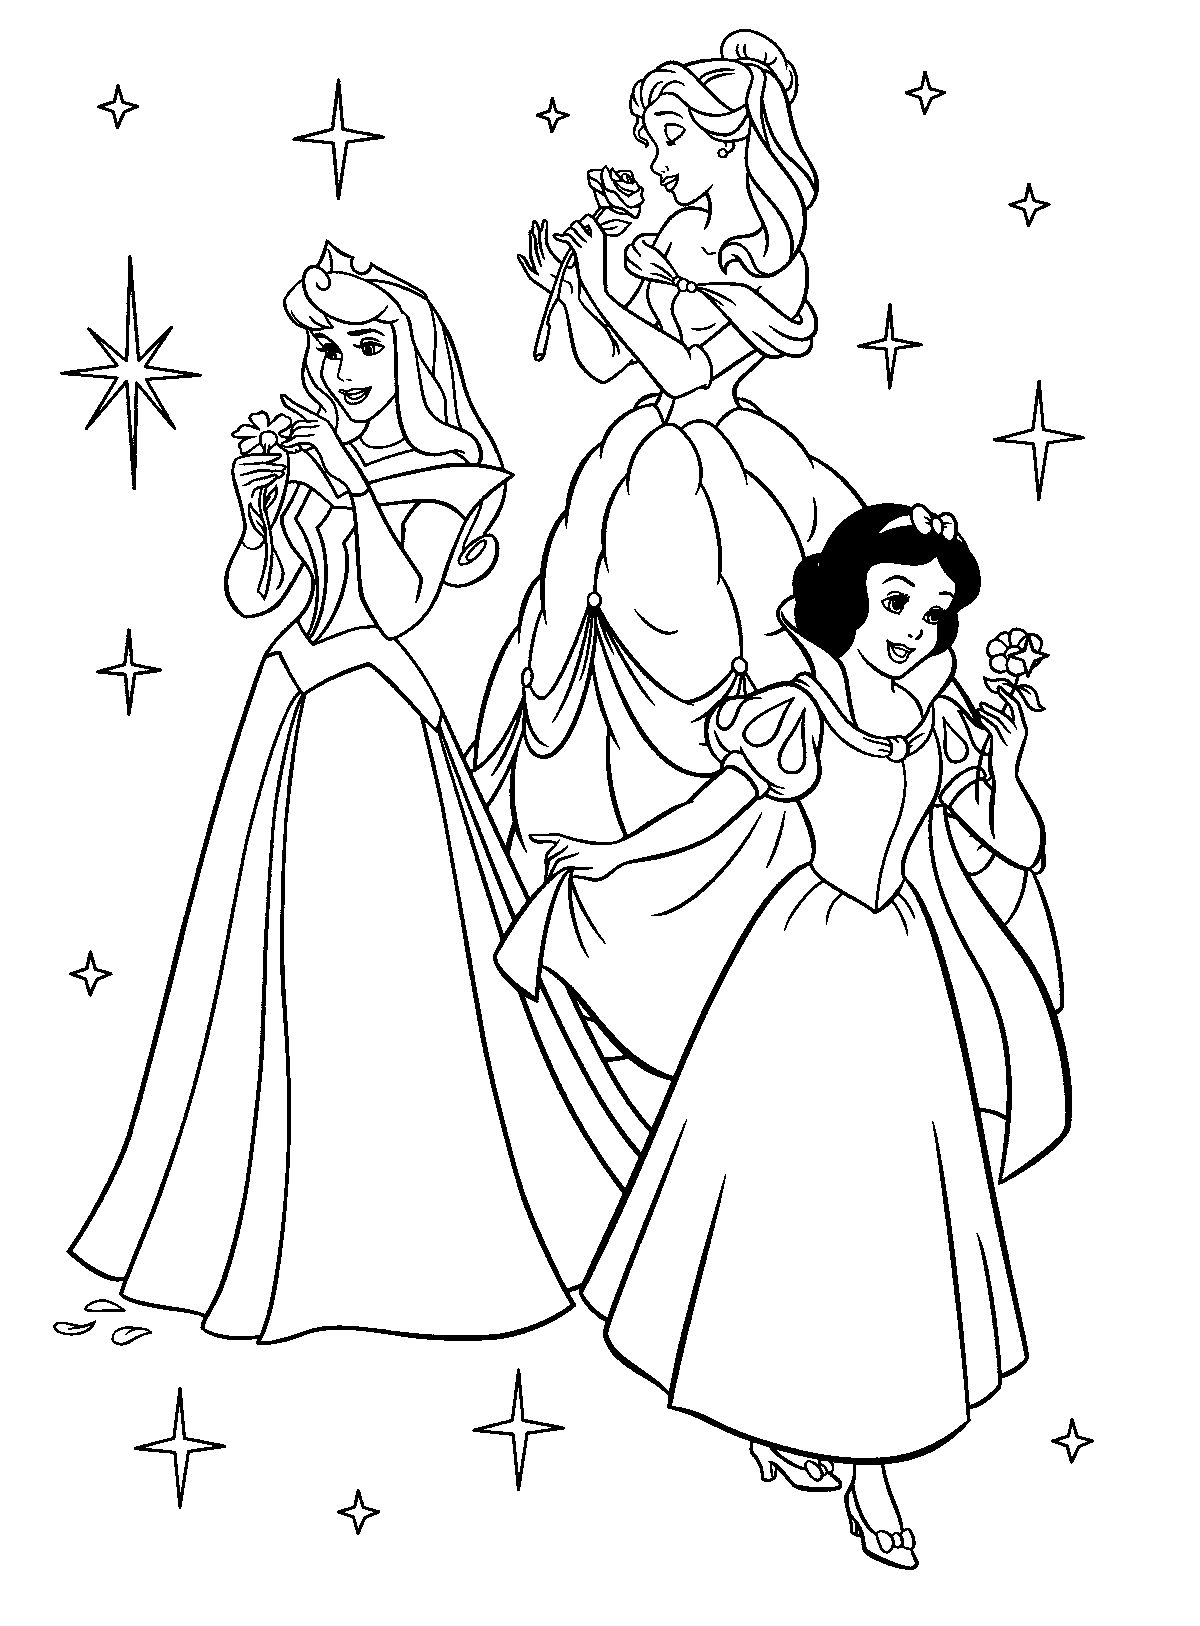 Free Printable Disney Princess Coloring Pages For Kids | Színezők ...